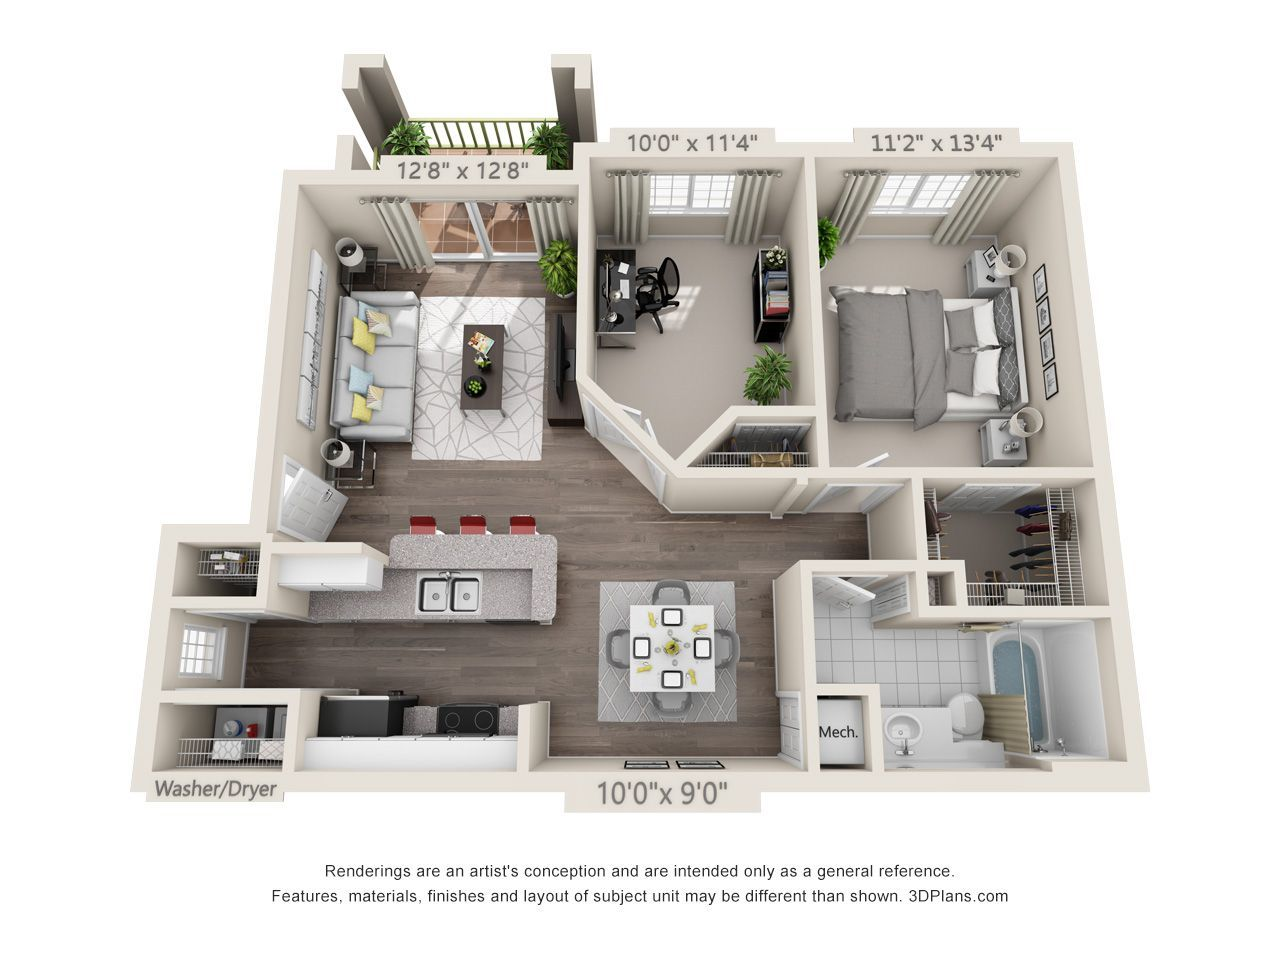 Pin By Lavoronew On Apartment Decor Sims House Plans Sims House Design Apartment Layout